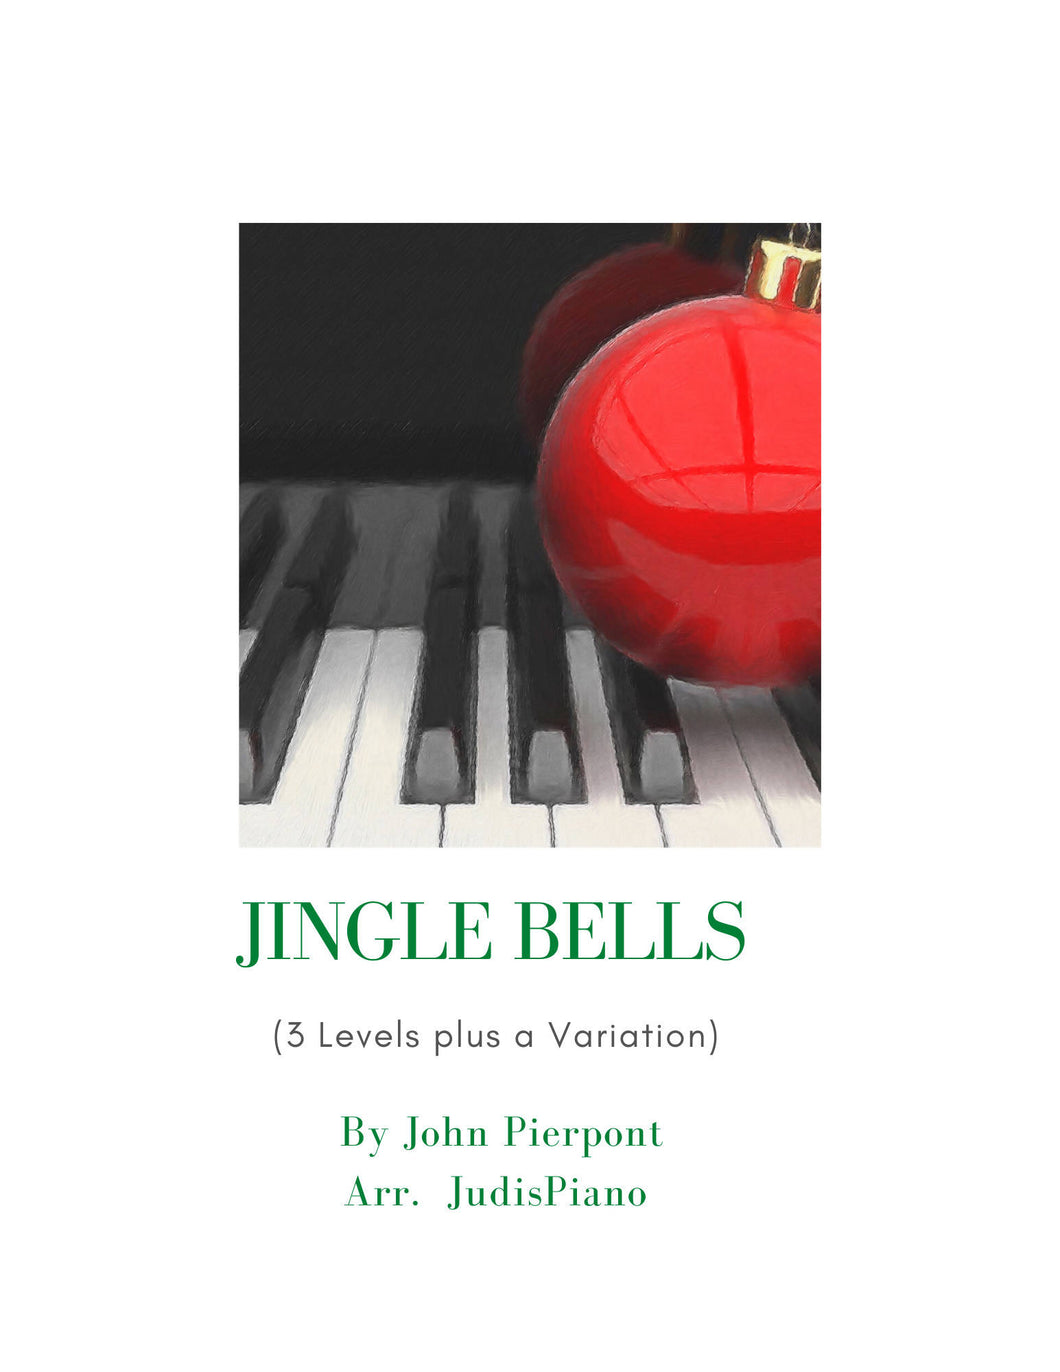 Jingle Bells (3 levels plus a variation)